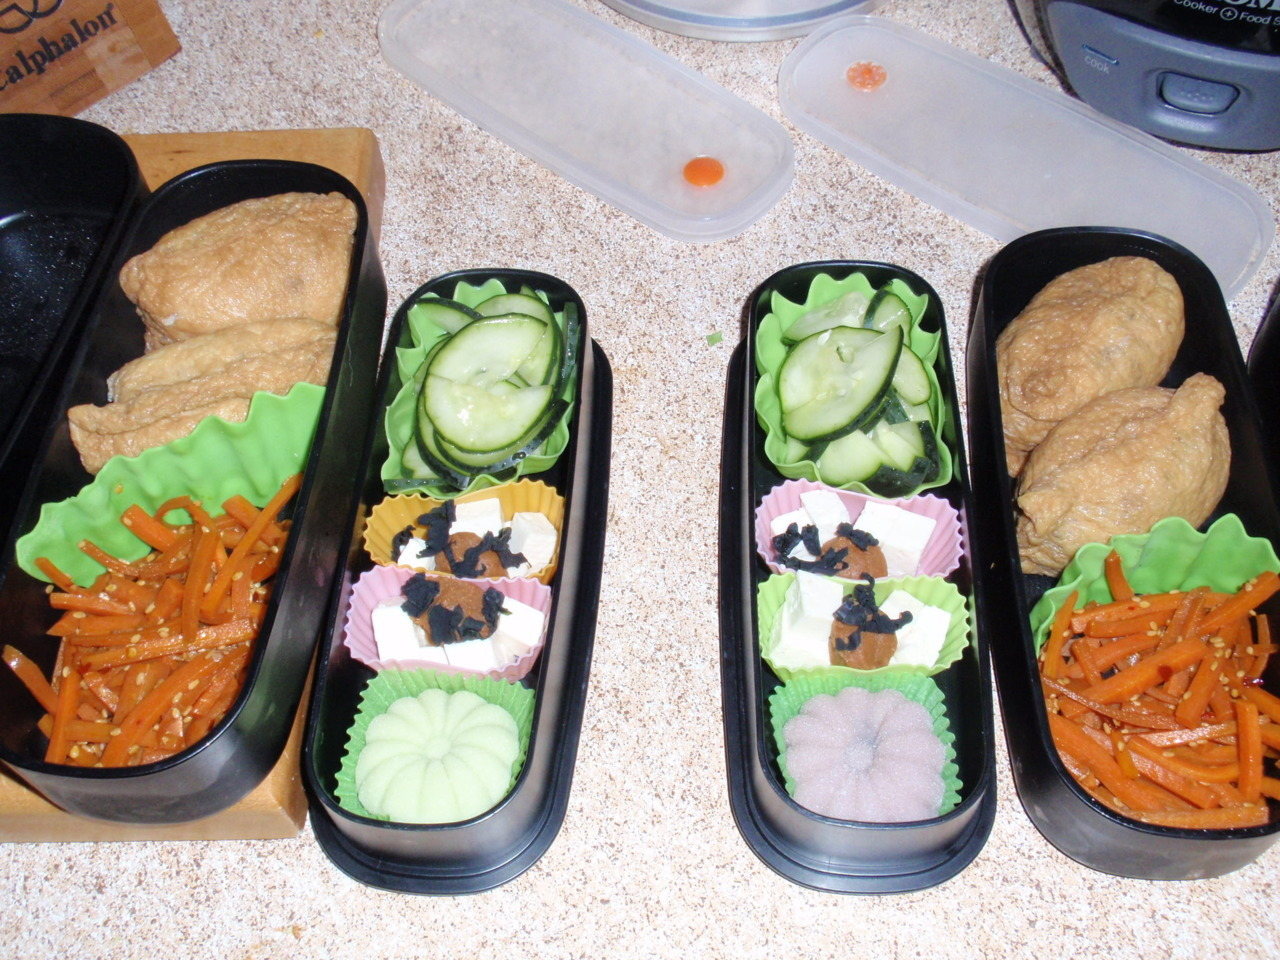 Though I need to work on my food photography, here are the bentos I made for myself and my husband for today. Inarizushi filled with rice and mushrooms, carrot kinpira, quick pickles, miso and tofu for soup, and mochis! Yum.